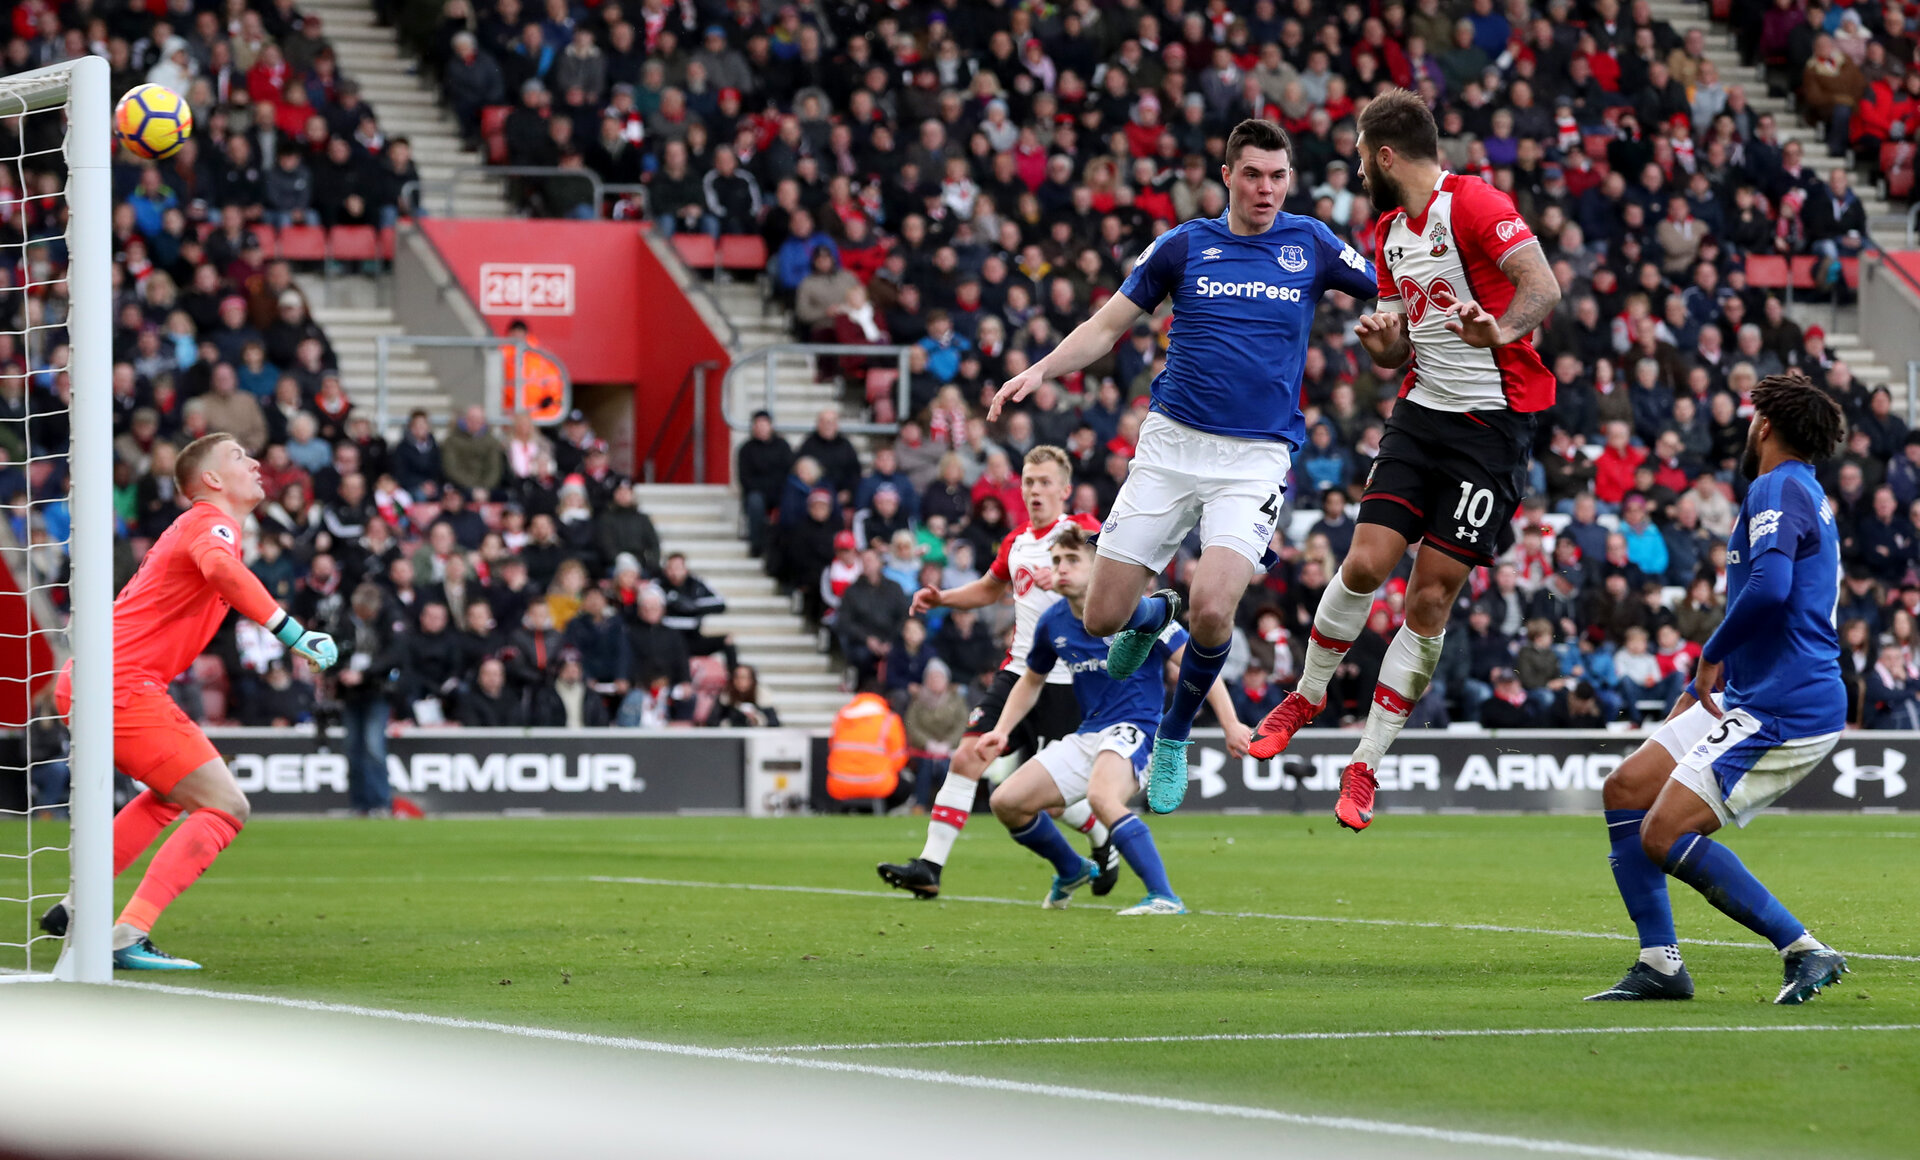 SOUTHAMPTON, ENGLAND - NOVEMBER 26: Southampton's Charlie Austin scores his first goal of the game during the Premier League match between Southampton and Everton at St Mary's Stadium on November 26, 2017 in Southampton, England. (Photo by Matt Watson/Southampton FC via Getty Images)